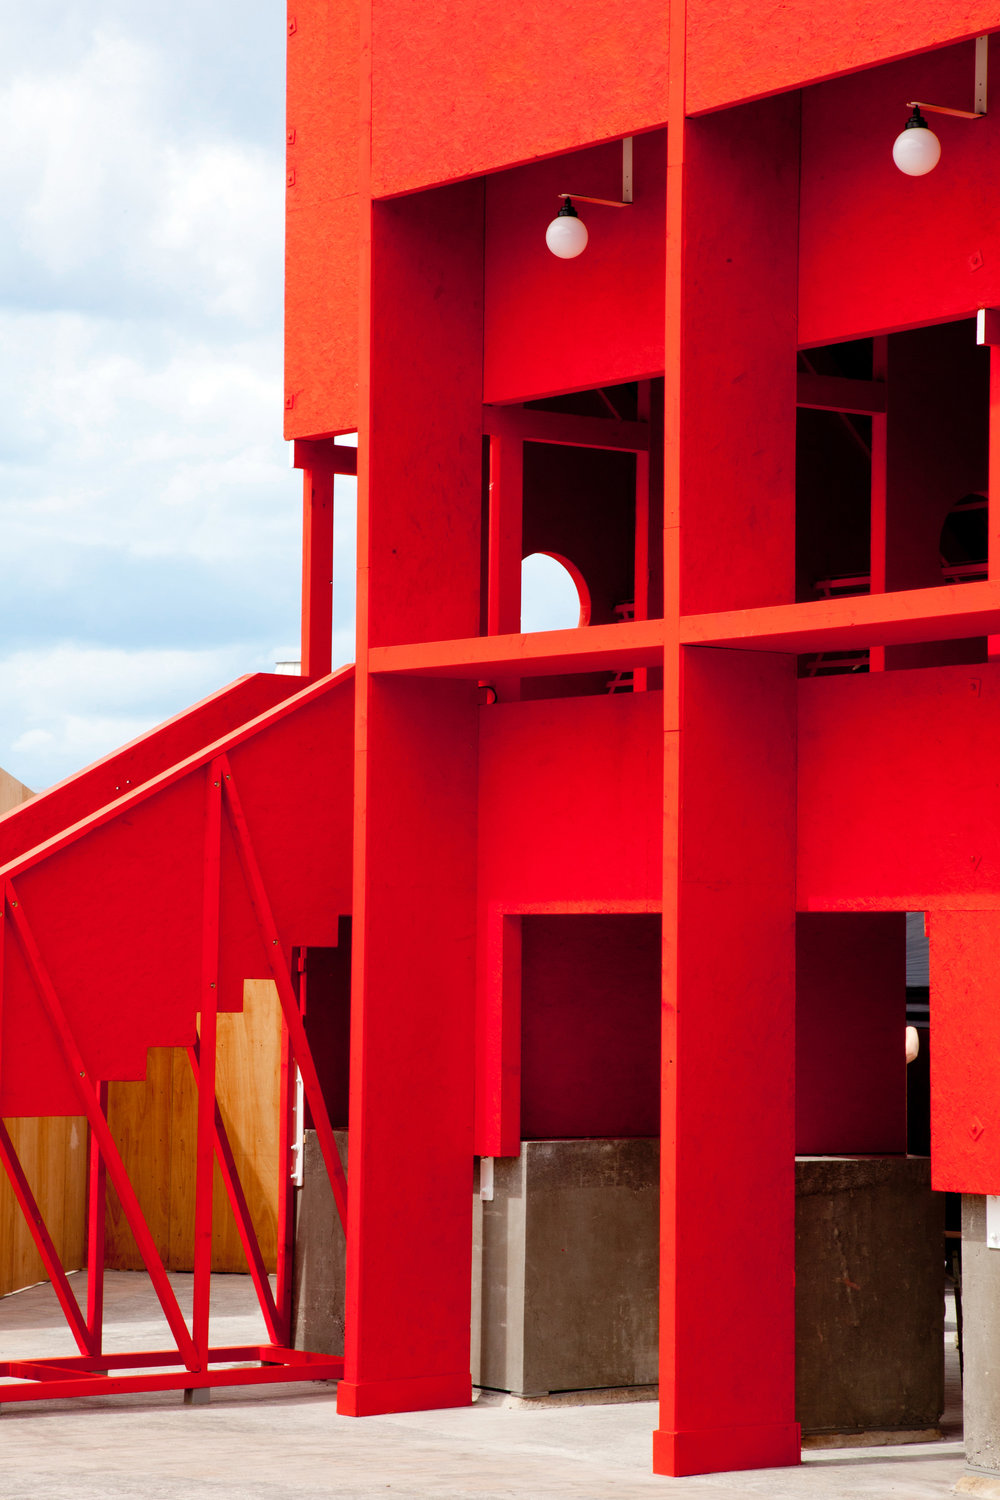 Red Pavilion by TAKA, Clancy Moore and Steve Larkin_Part of New Horizon_architecture from Ireland at London Festival of Architecture 2015__Image courtesy of Jon Bosworth_4.jpg